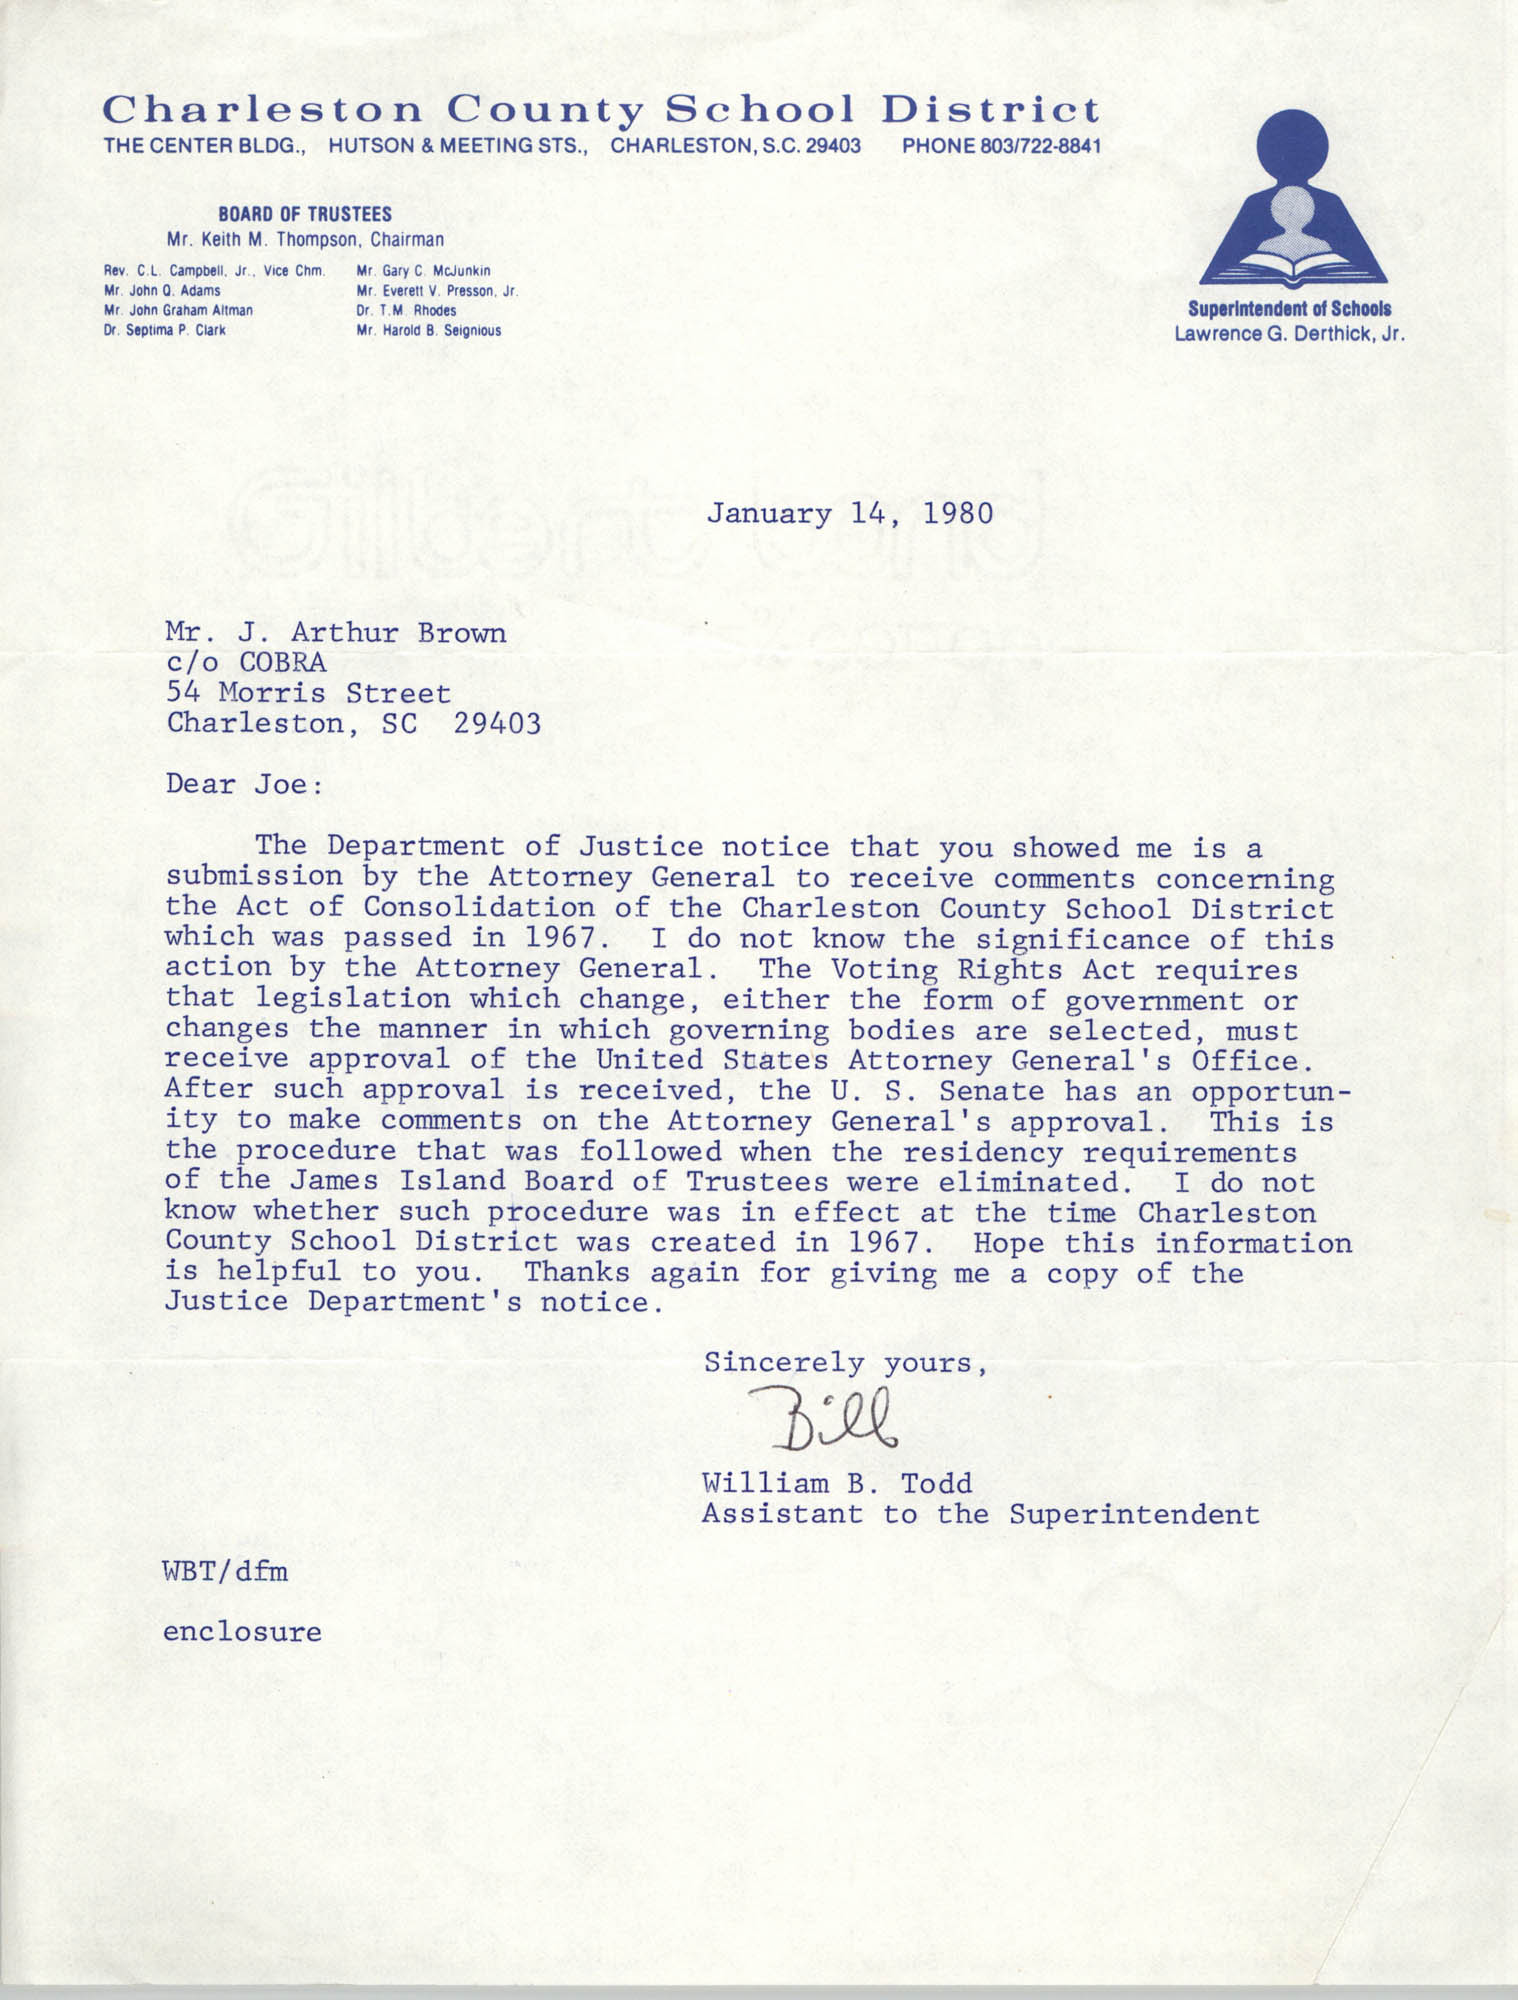 Letter from William B. Todd to J. Arthur Brown, January 14, 1980